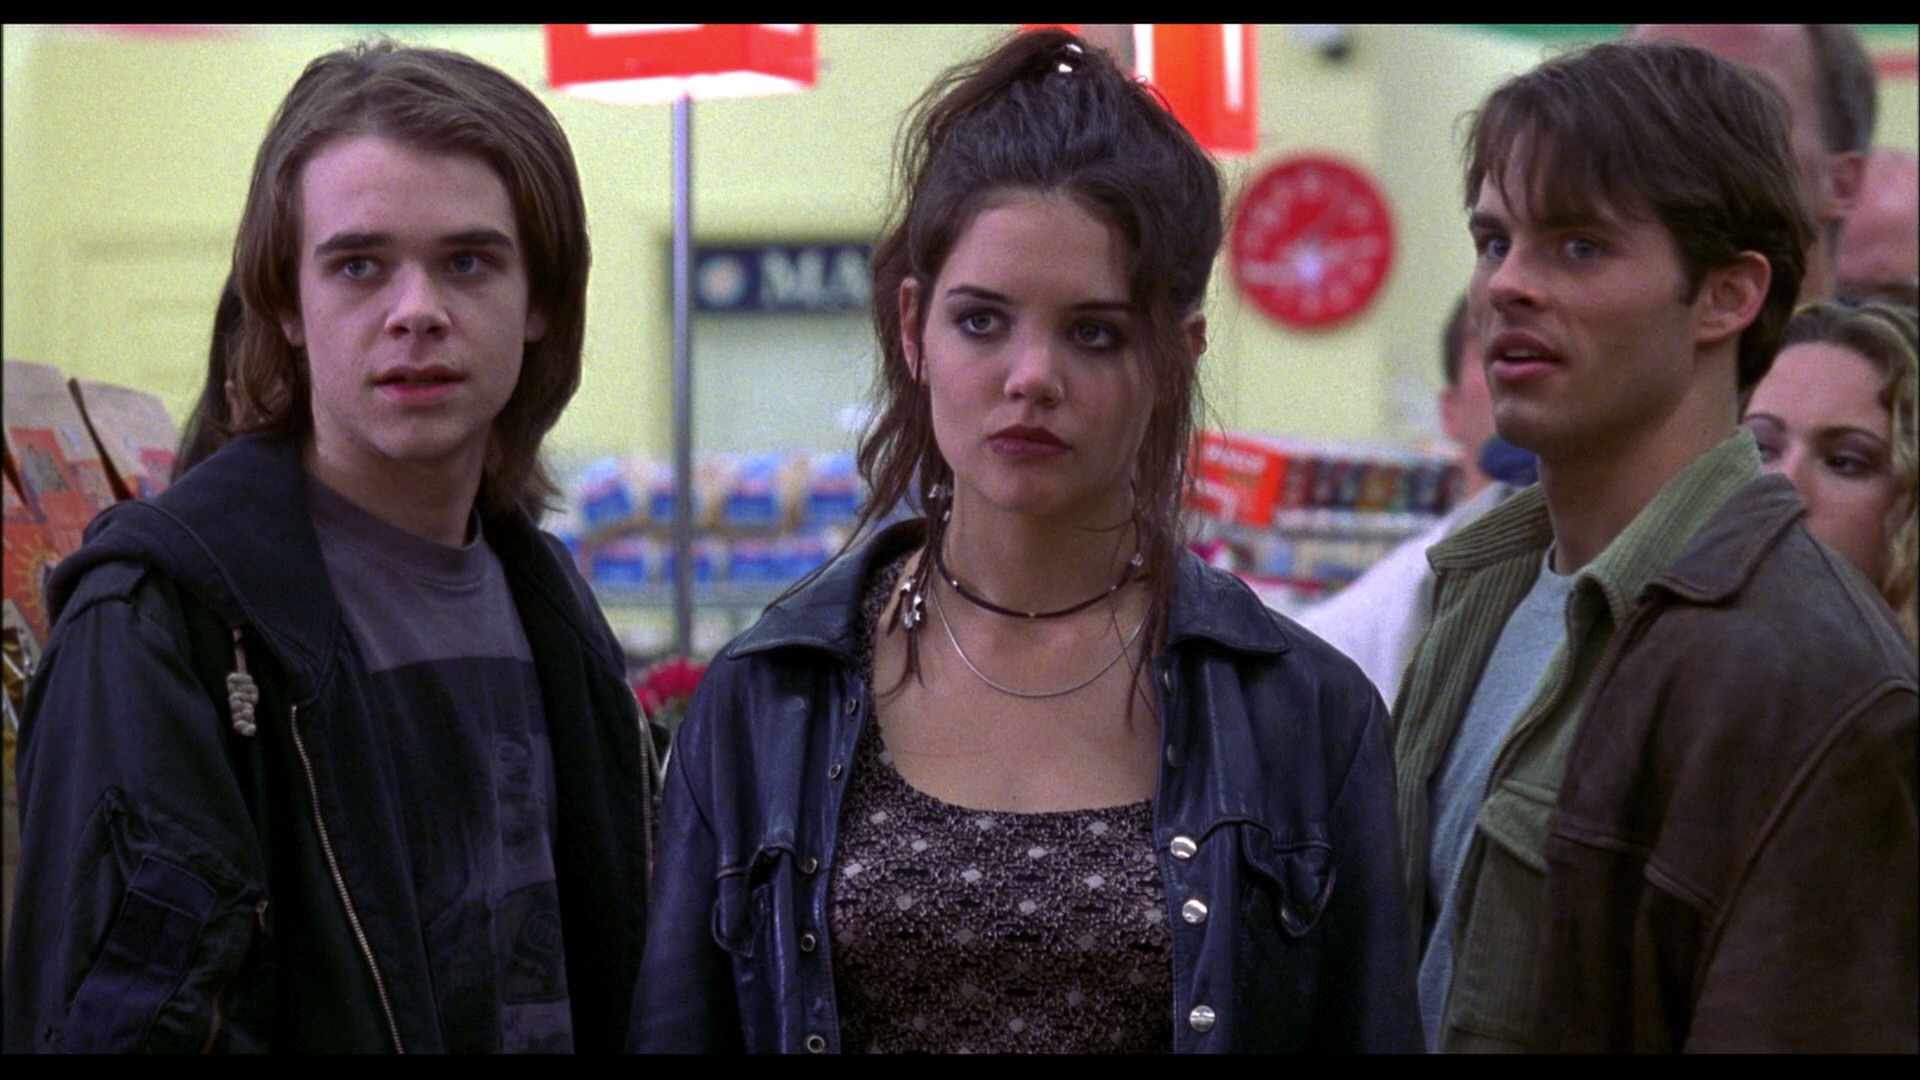 Katie holmes disturbing behavior